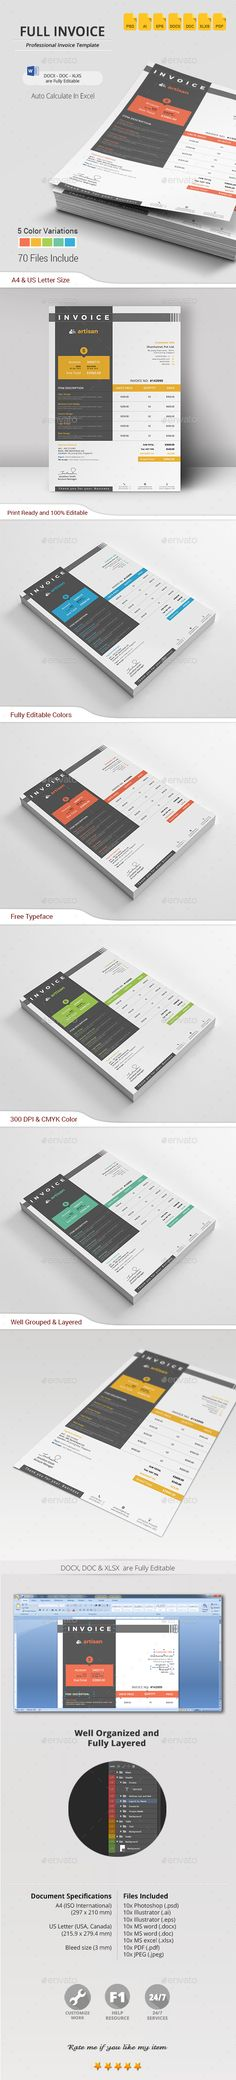 10 Creative Invoice Template Designs Business, Invoice example - indesign invoice template